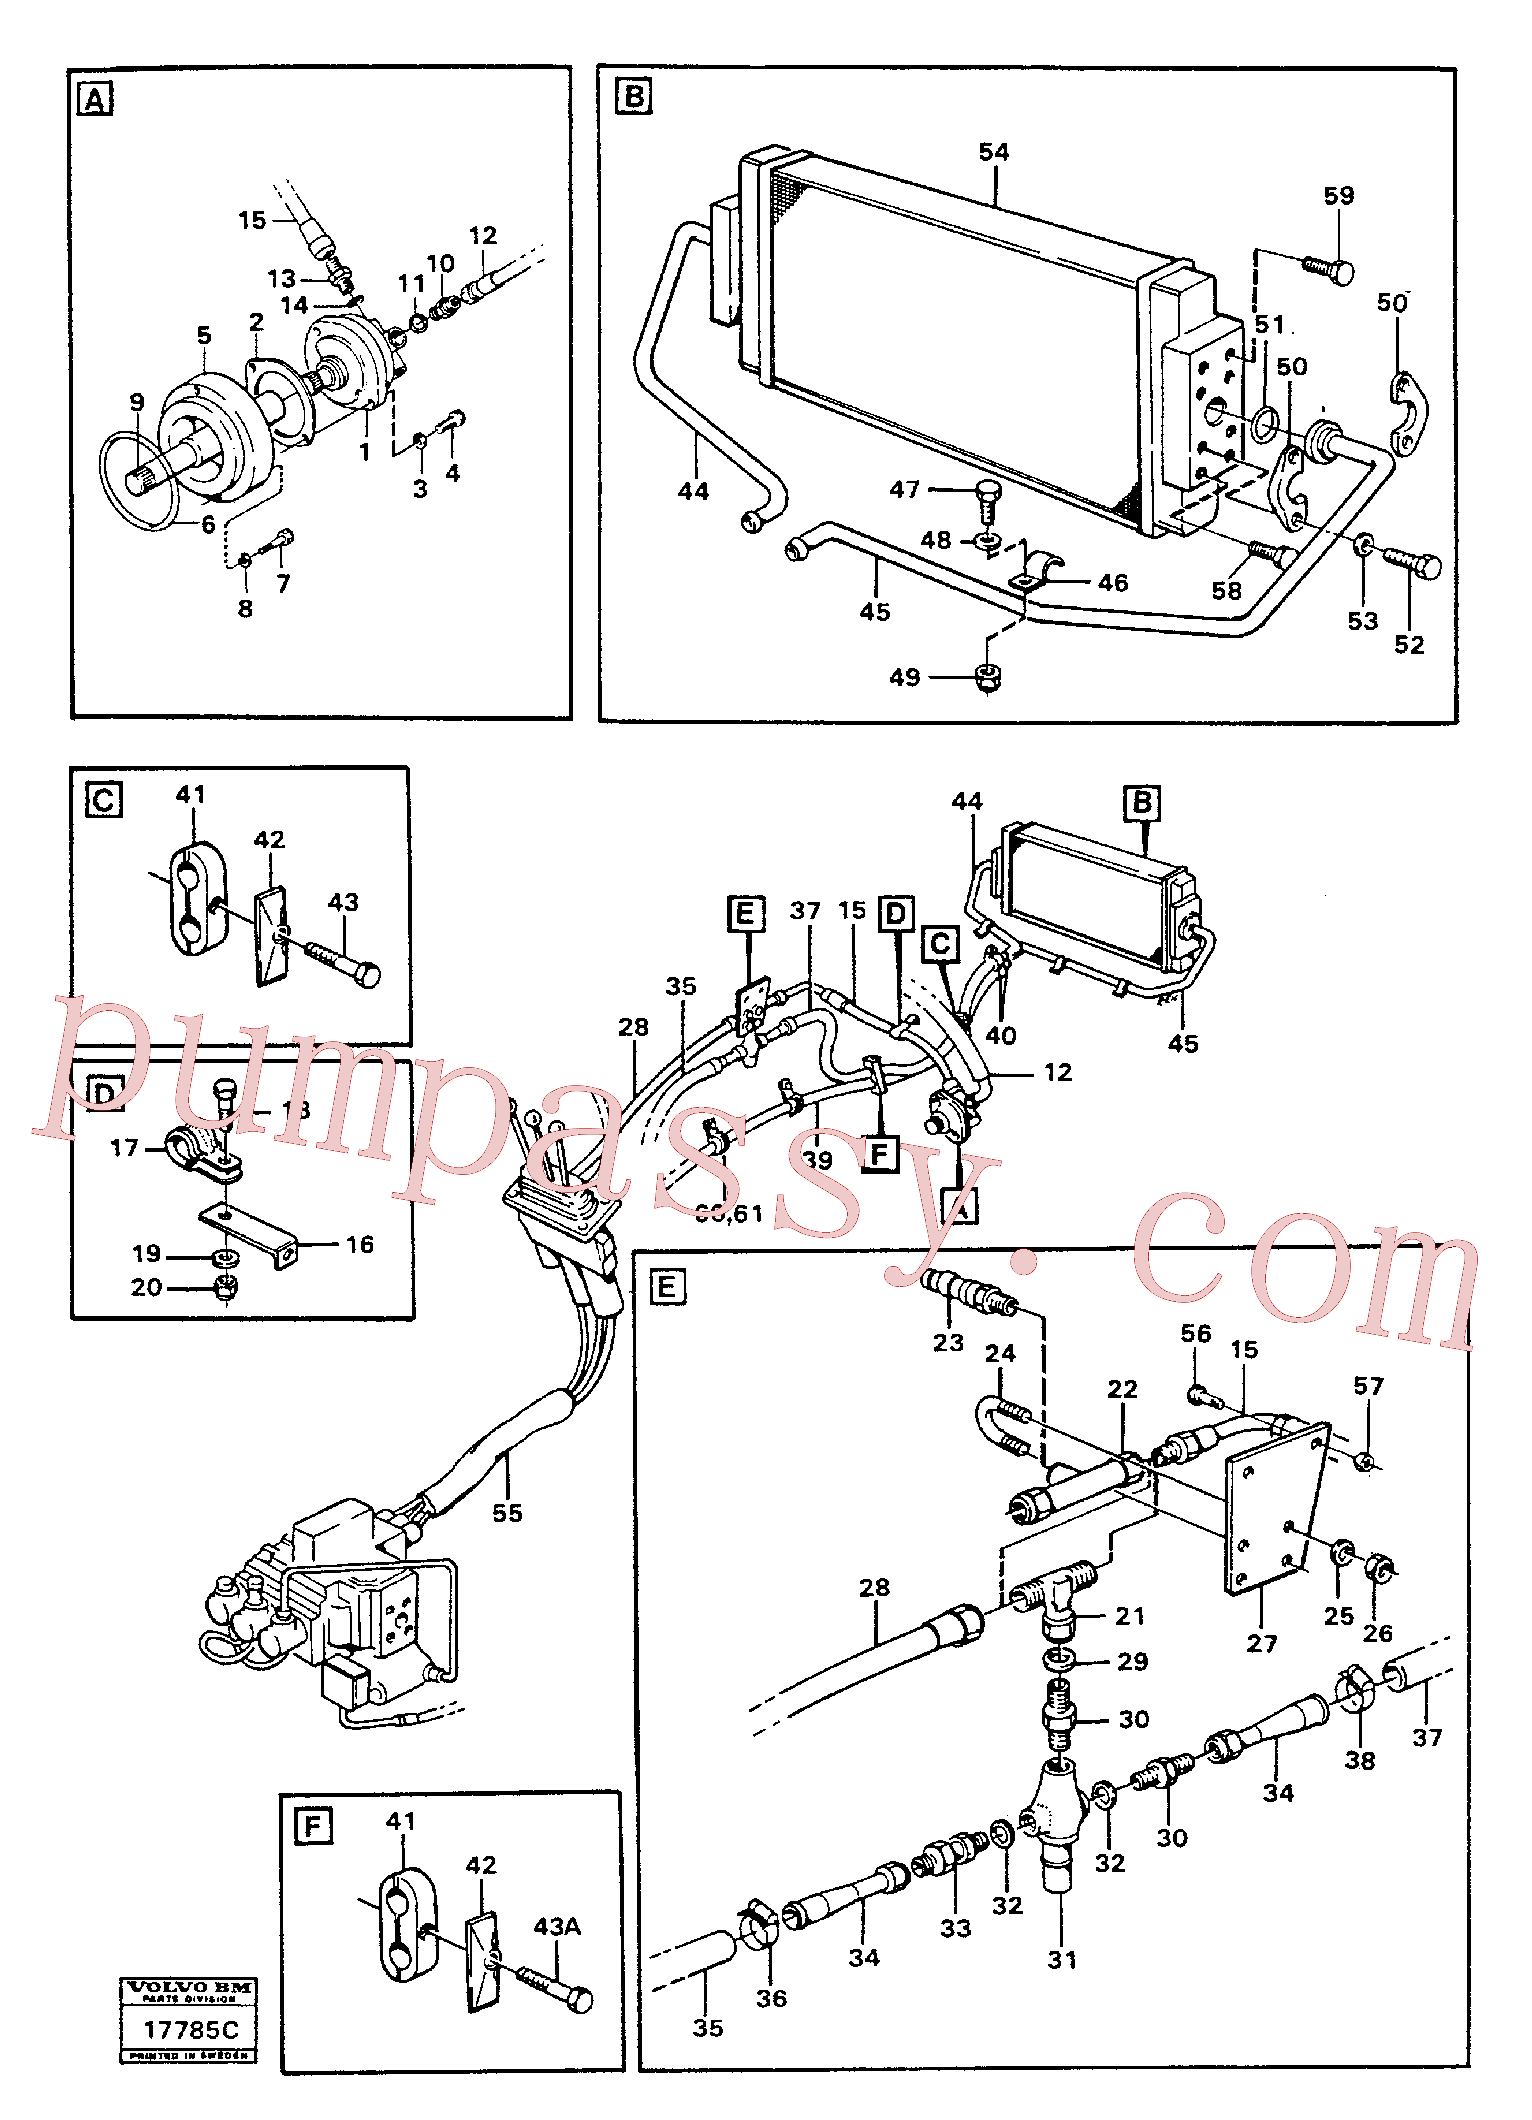 VOE192639 for Volvo Servo-system: feed lines.(17785C assembly)